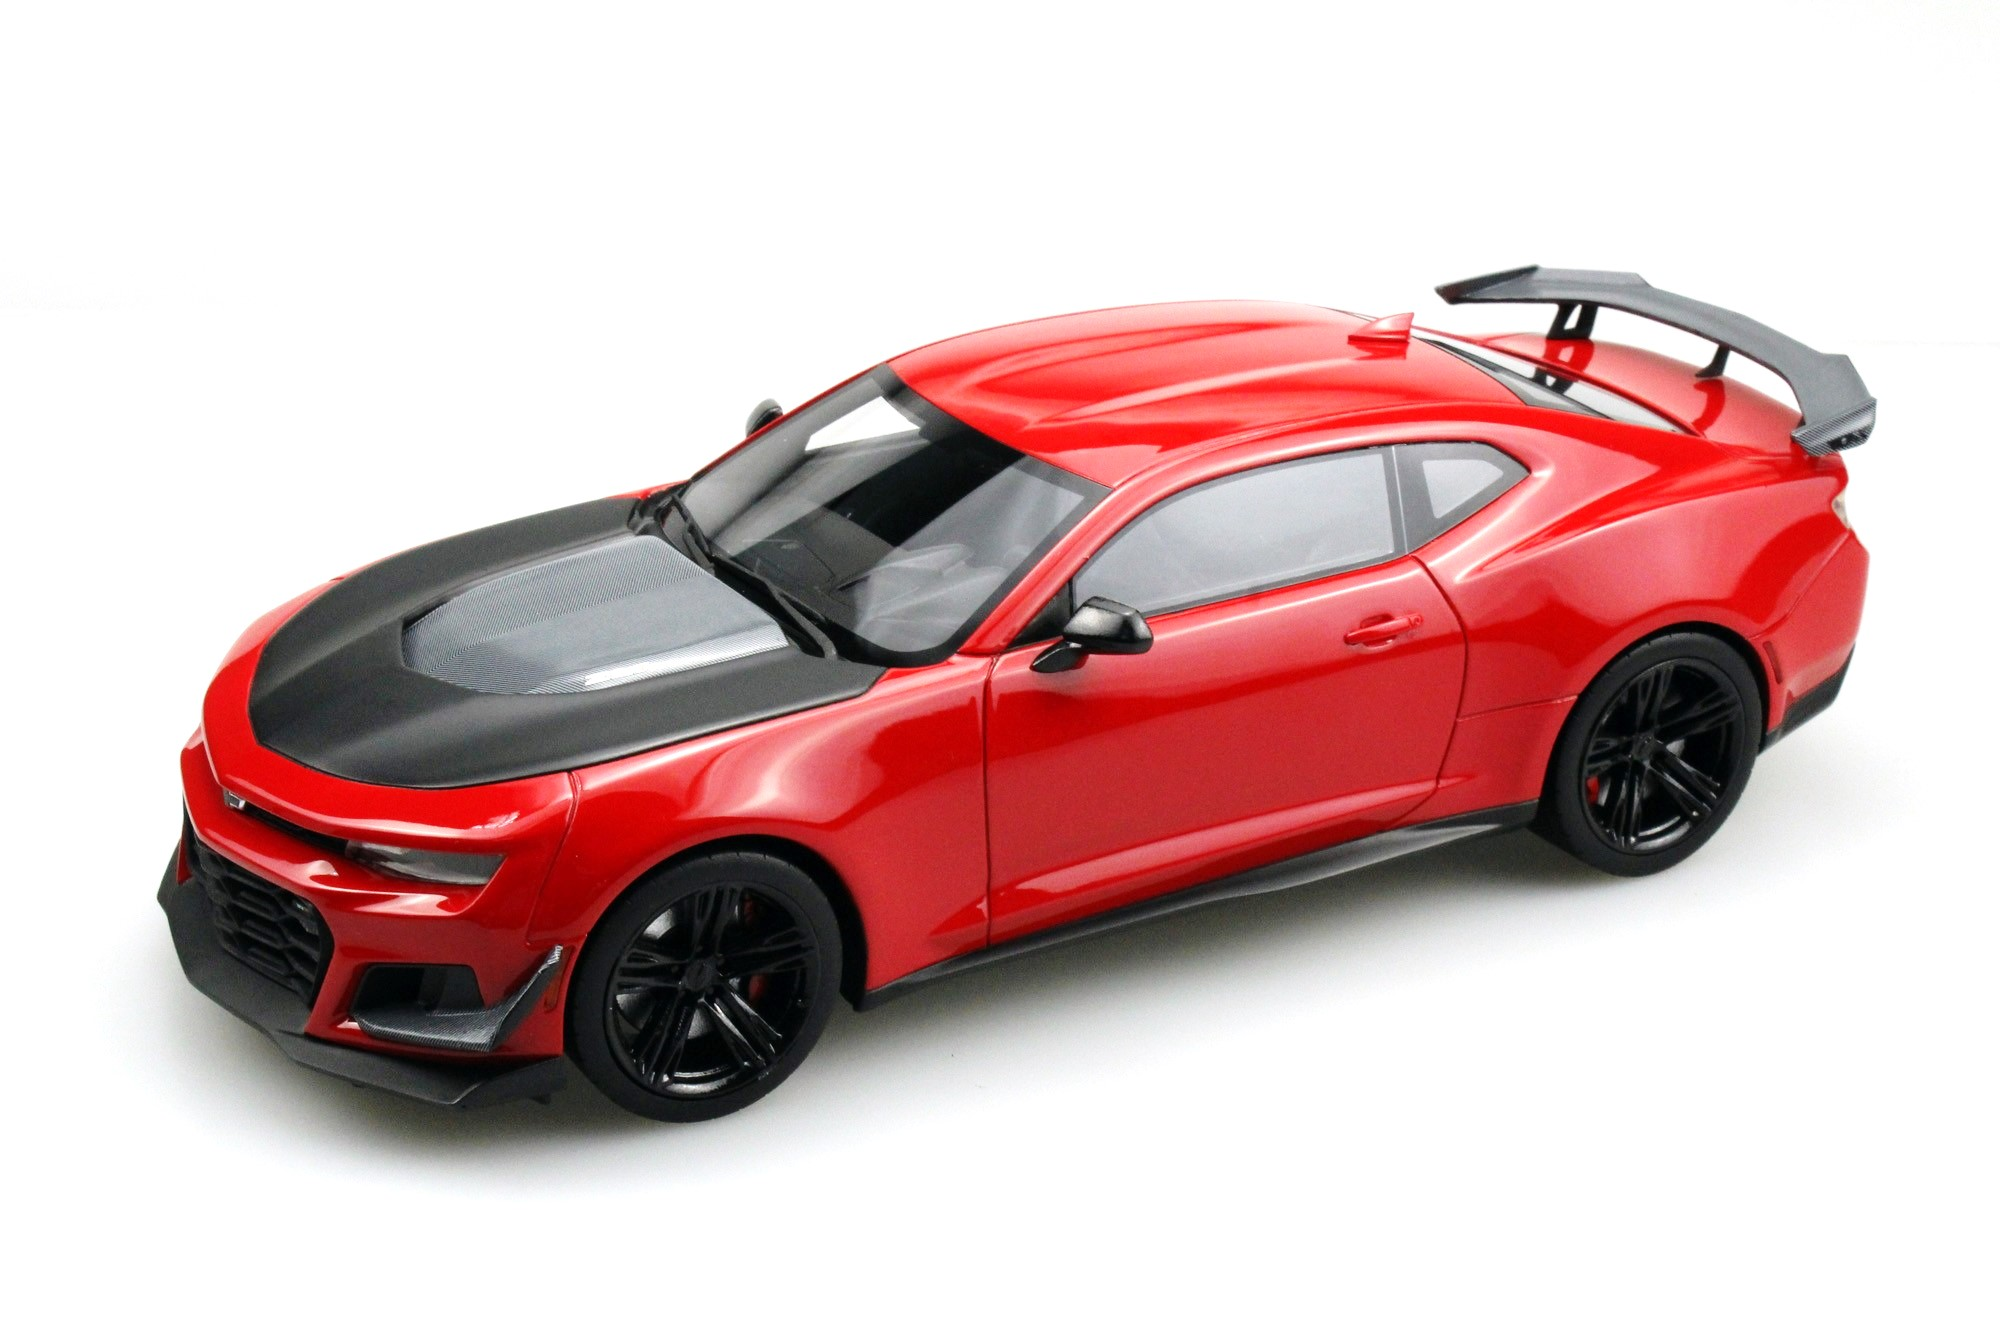 Chevrolet Camaro ZL1 1LE Hennessey HPE850 1:18 LS Collectibles